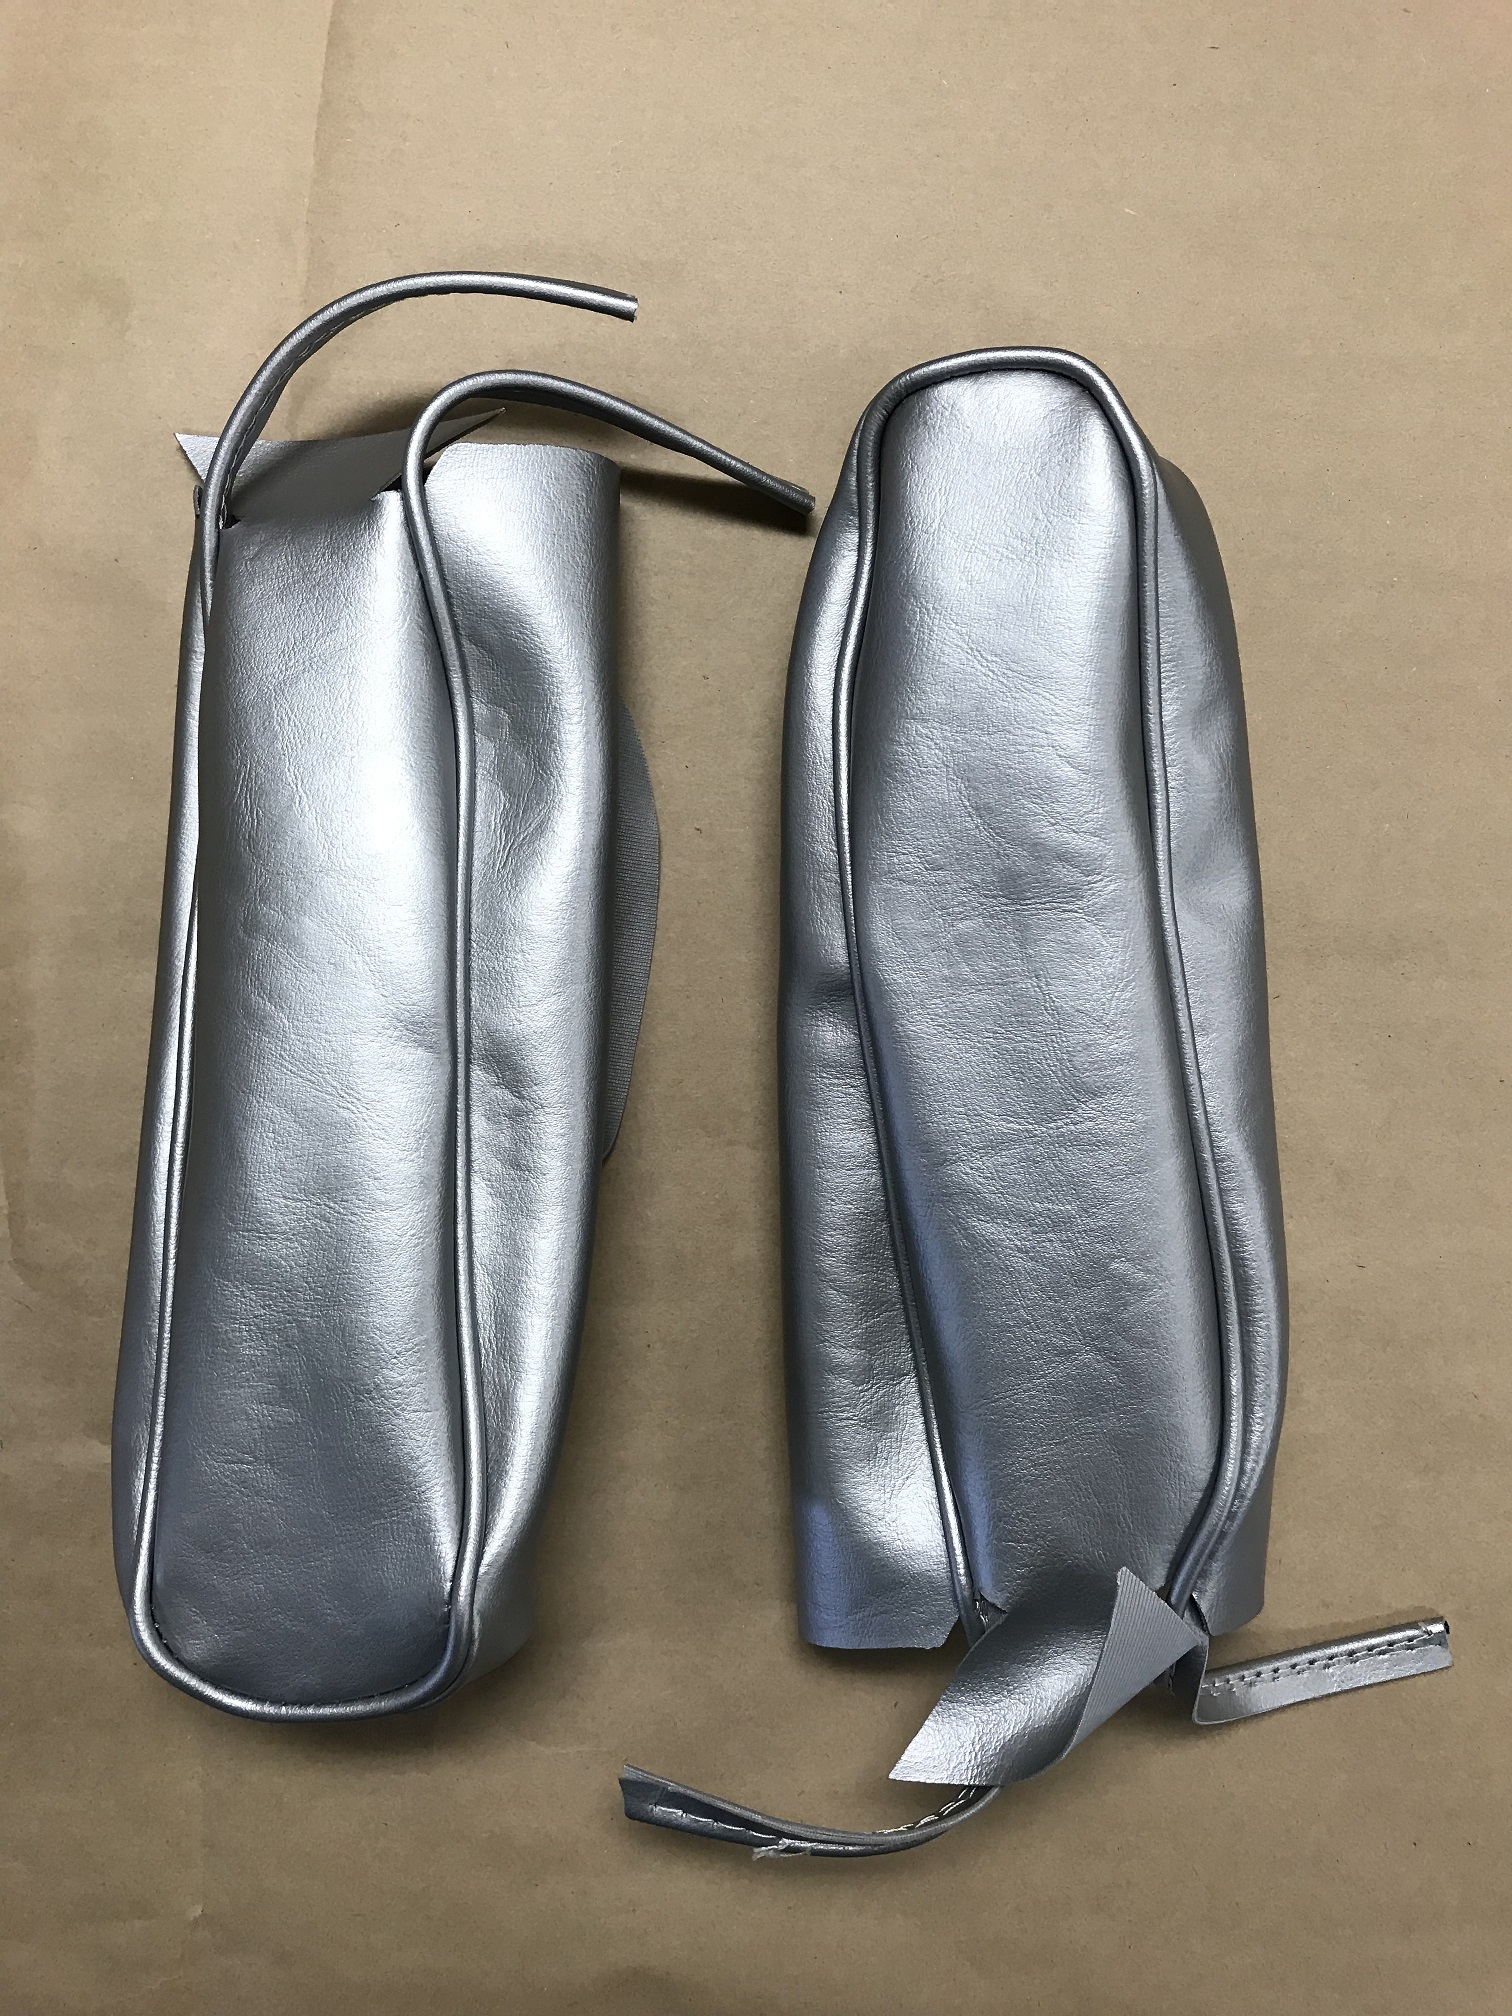 Arm Rest Covers for Rear Bench Seat - Silver, pair